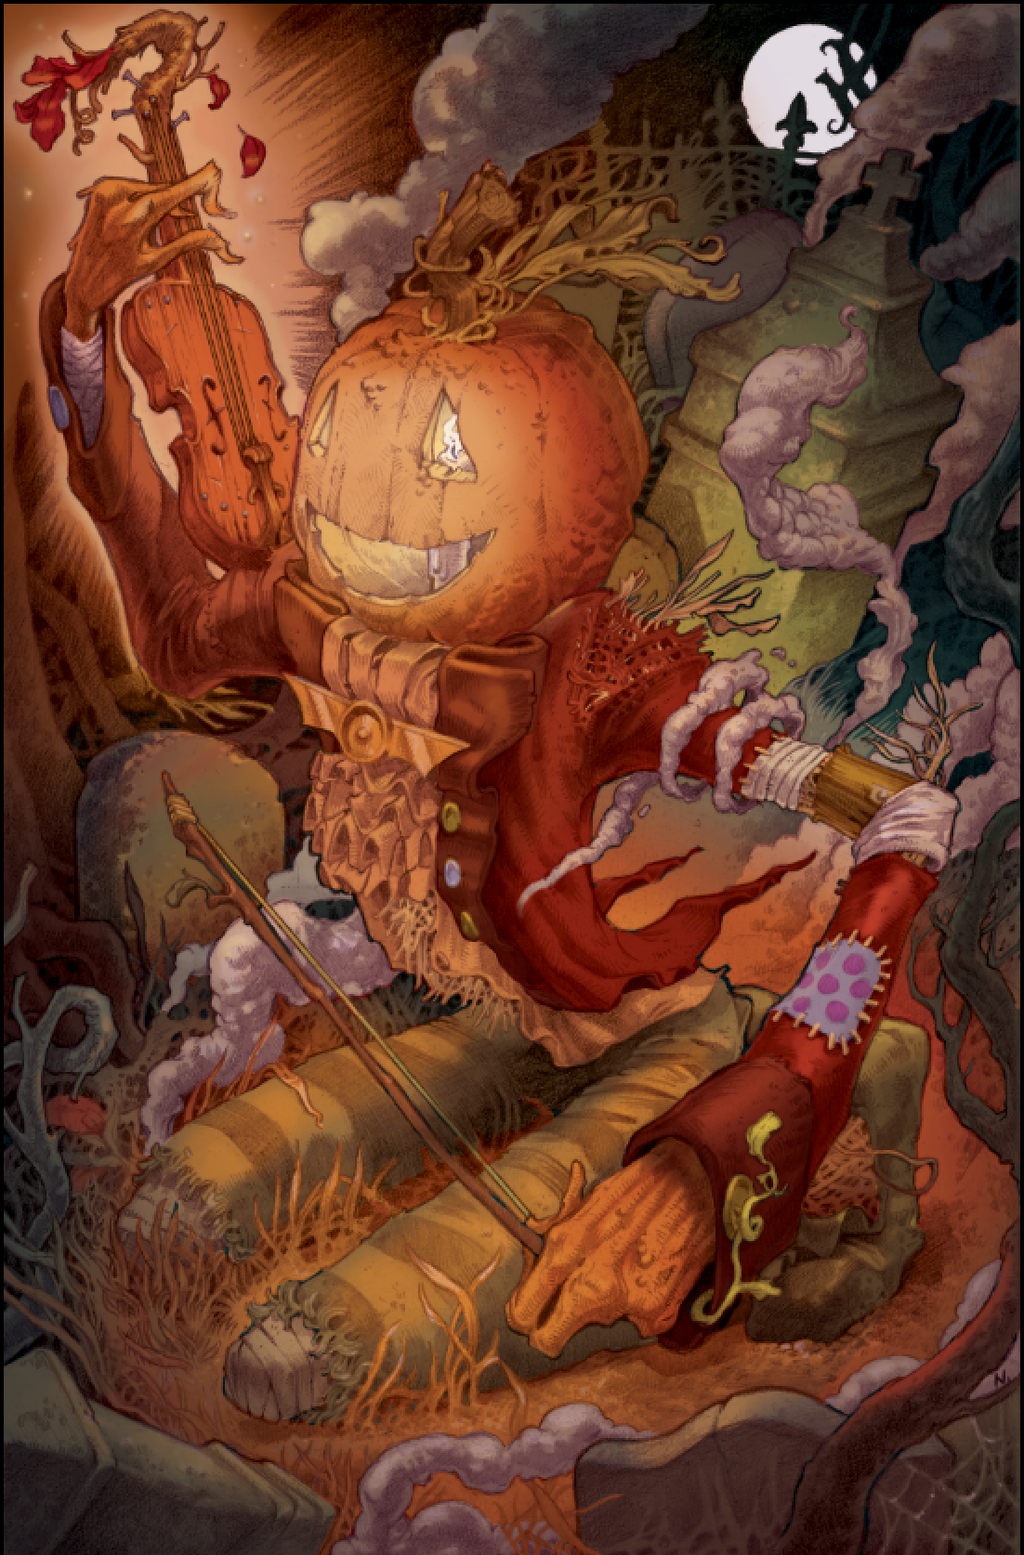 """""""Waking the Spirits of All Hallows' Eve"""" by Conor Nolan.  13"""" x 19"""" Giclee.  Timed edition N.  $40"""